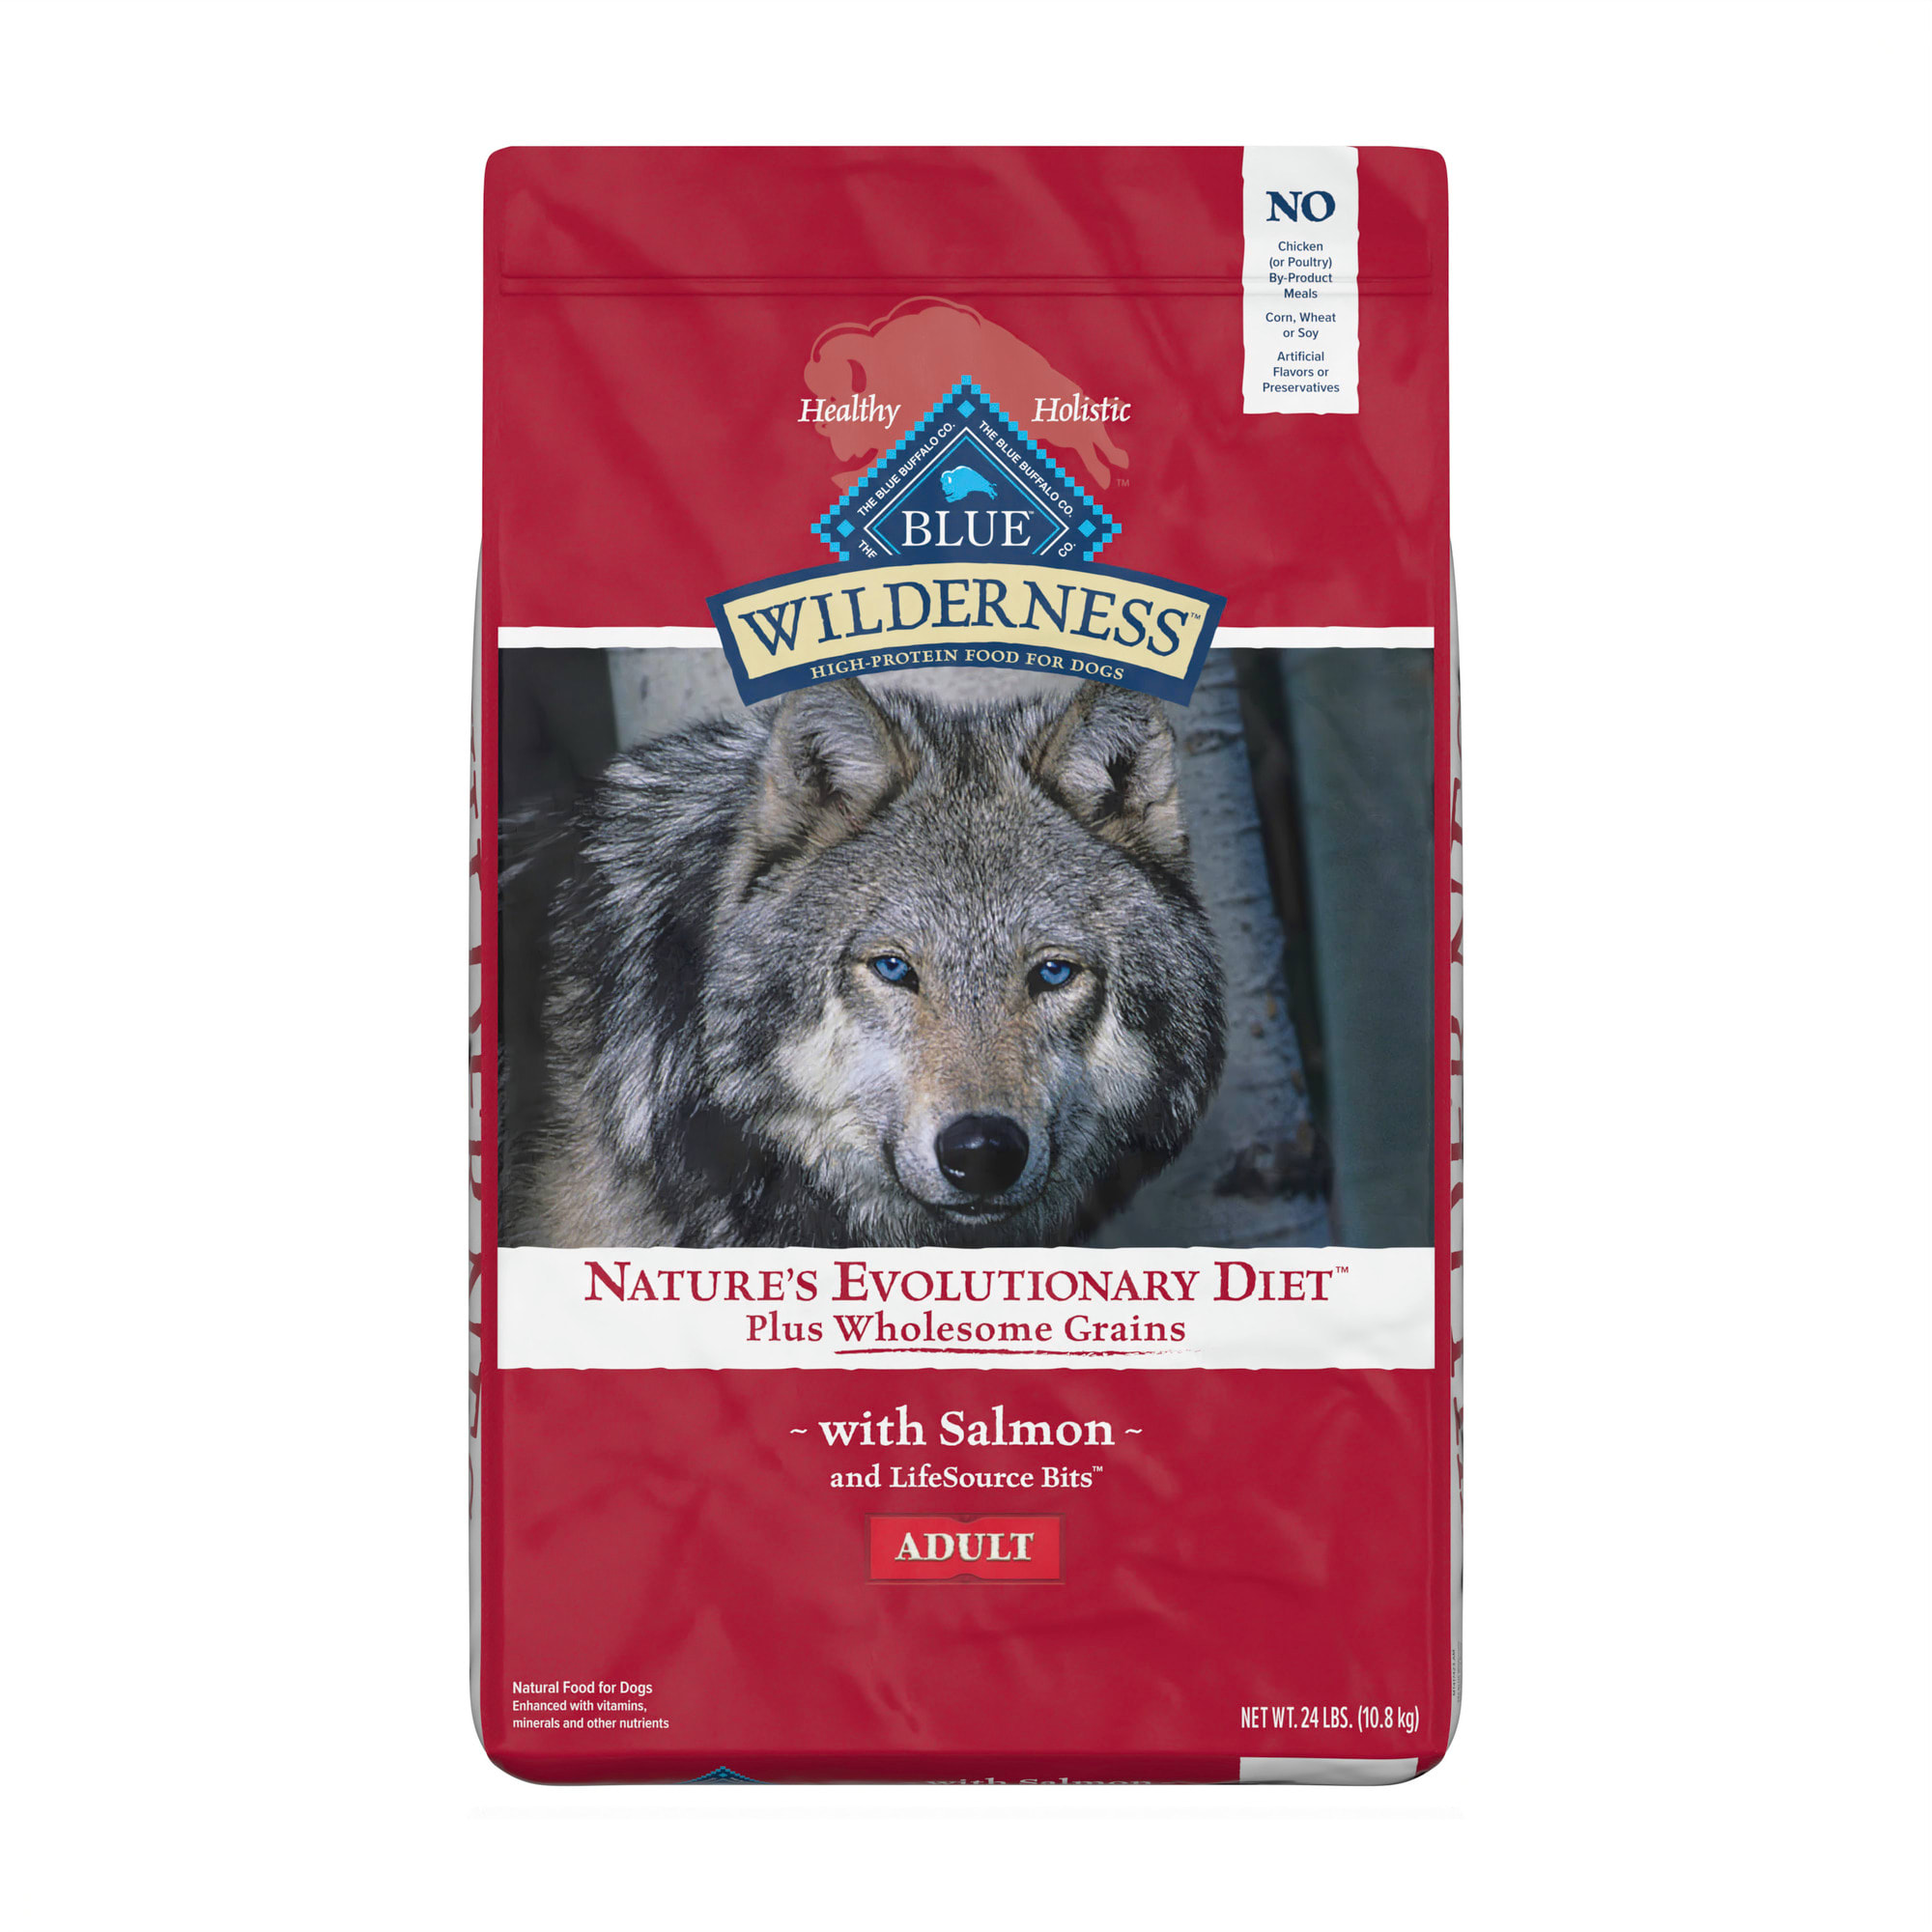 BLUE Wilderness natural dry dog food satisfies the spirit of the wolf in your canine with more of the meat dogs love and is enhanced with vitamins, minerals and other nutrients. This high protein dog food starts with delicious, protein-rich salmon, contains wholesome grains and features antioxidant-rich LifeSource Bits. Specially formulated for adult dogs, the high-quality protein plus complex carbohydrates help support your dog\\\'s energy needs.